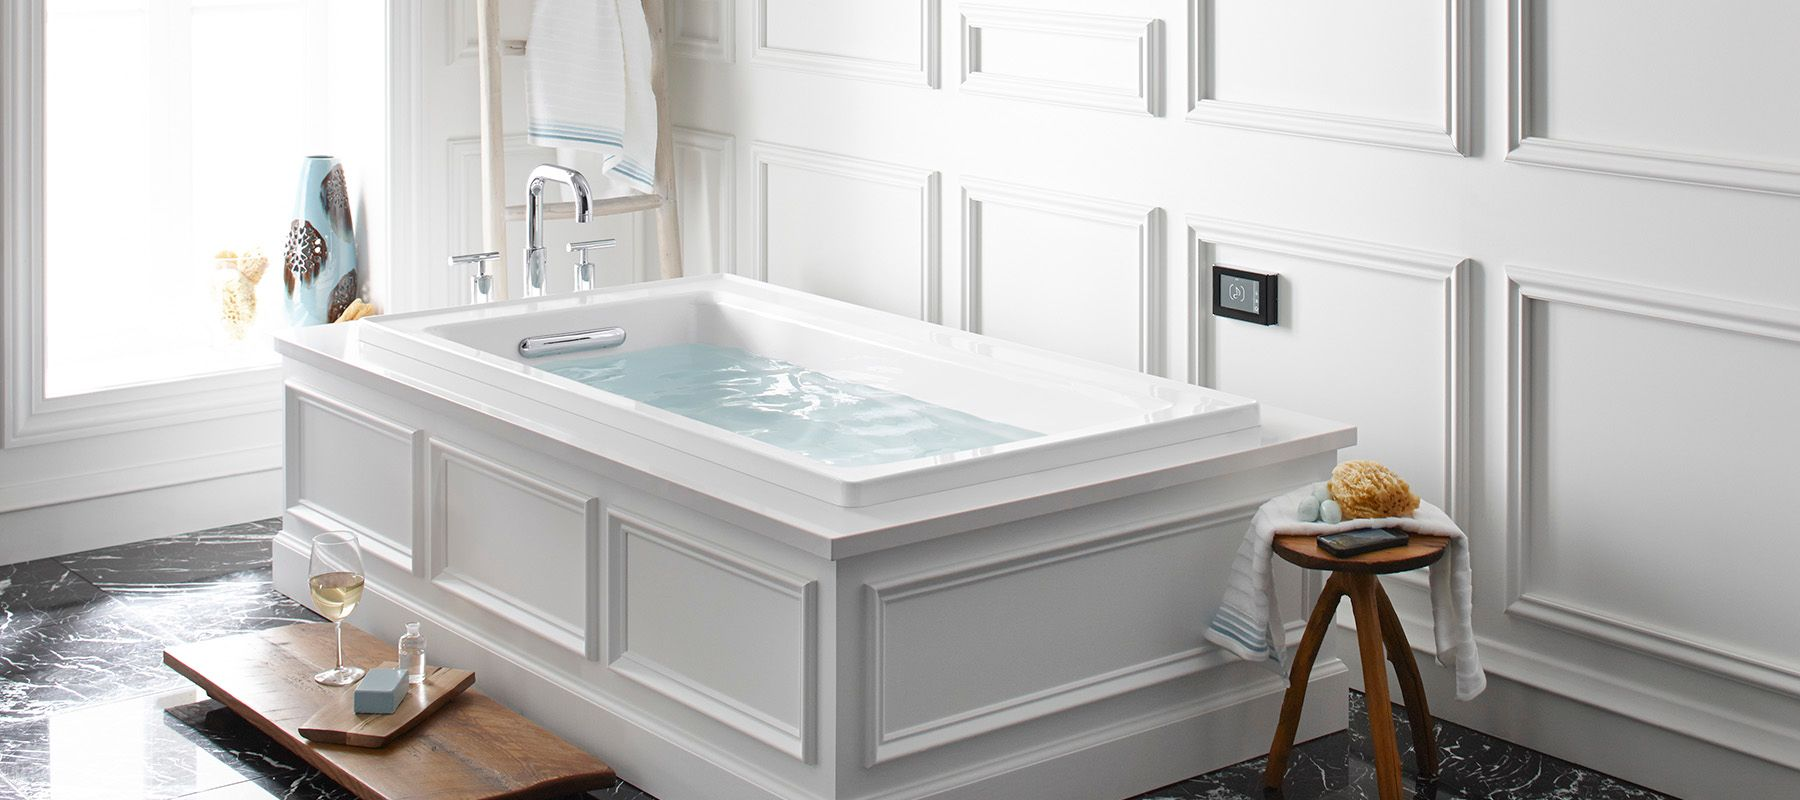 Bathtubs whirlpool bathing products bathroom kohler for Oversized baths